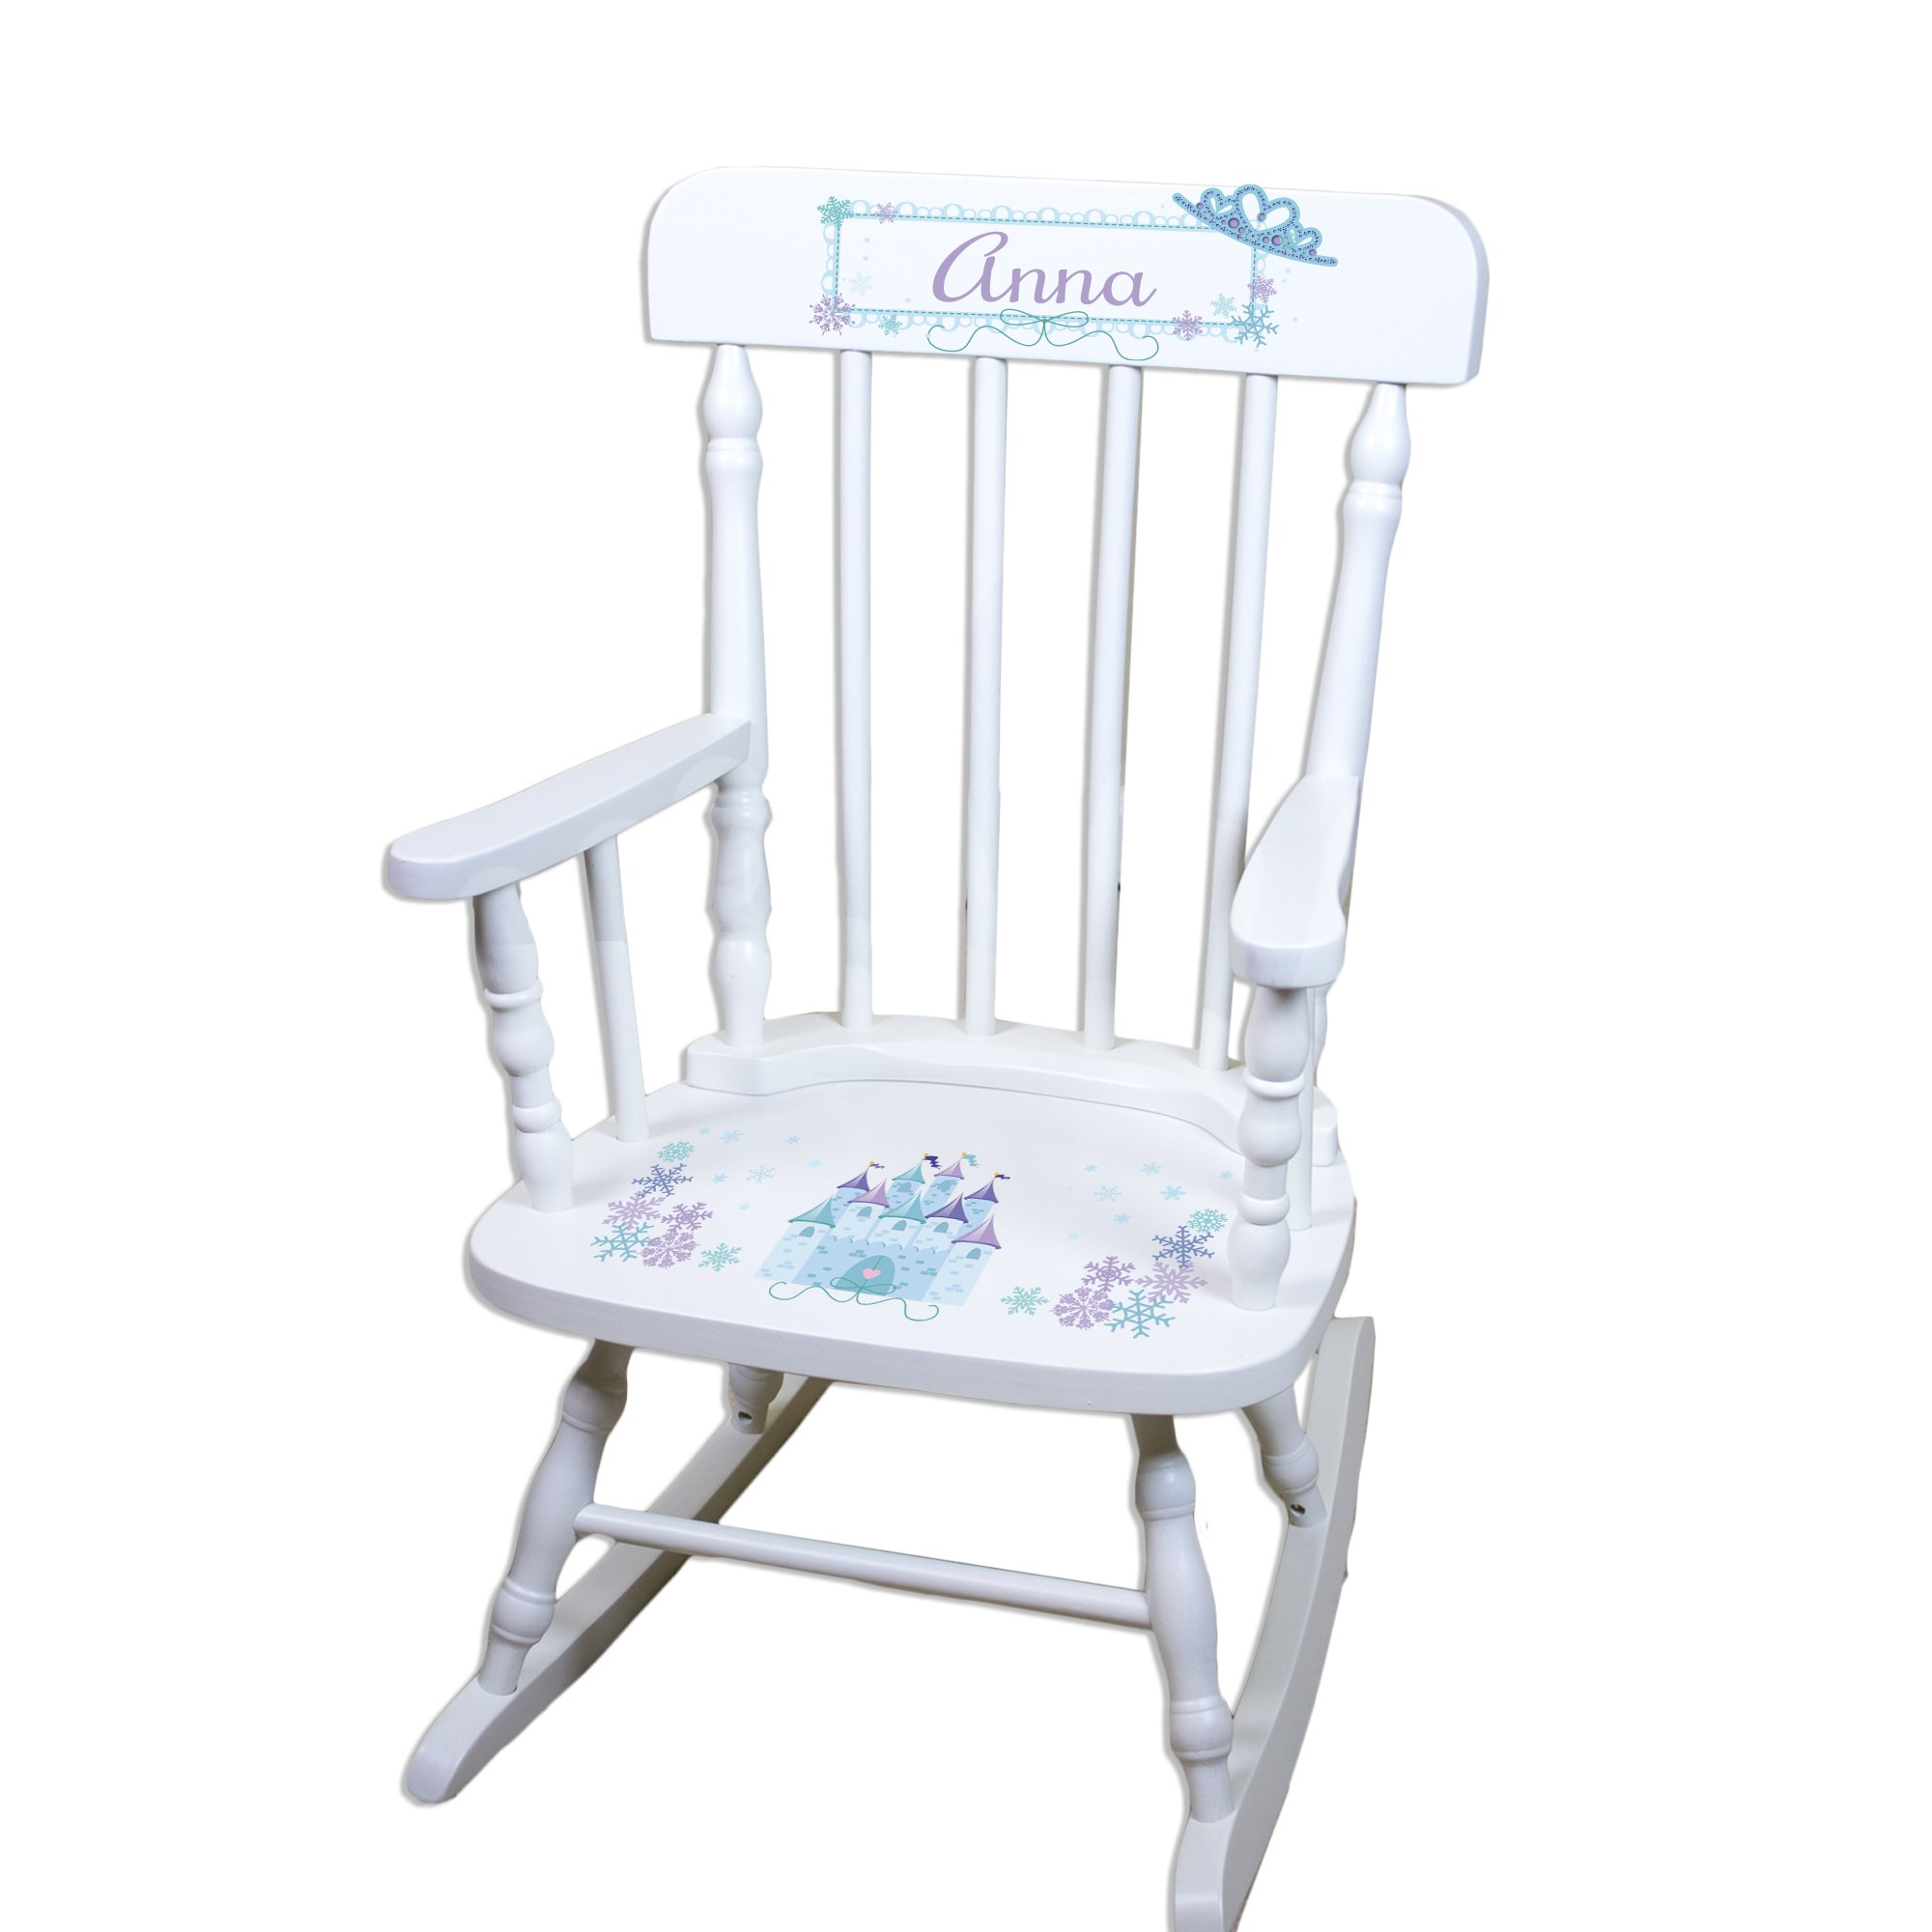 Children's Personalized White Ice Princess Rocking Chair by MyBambino